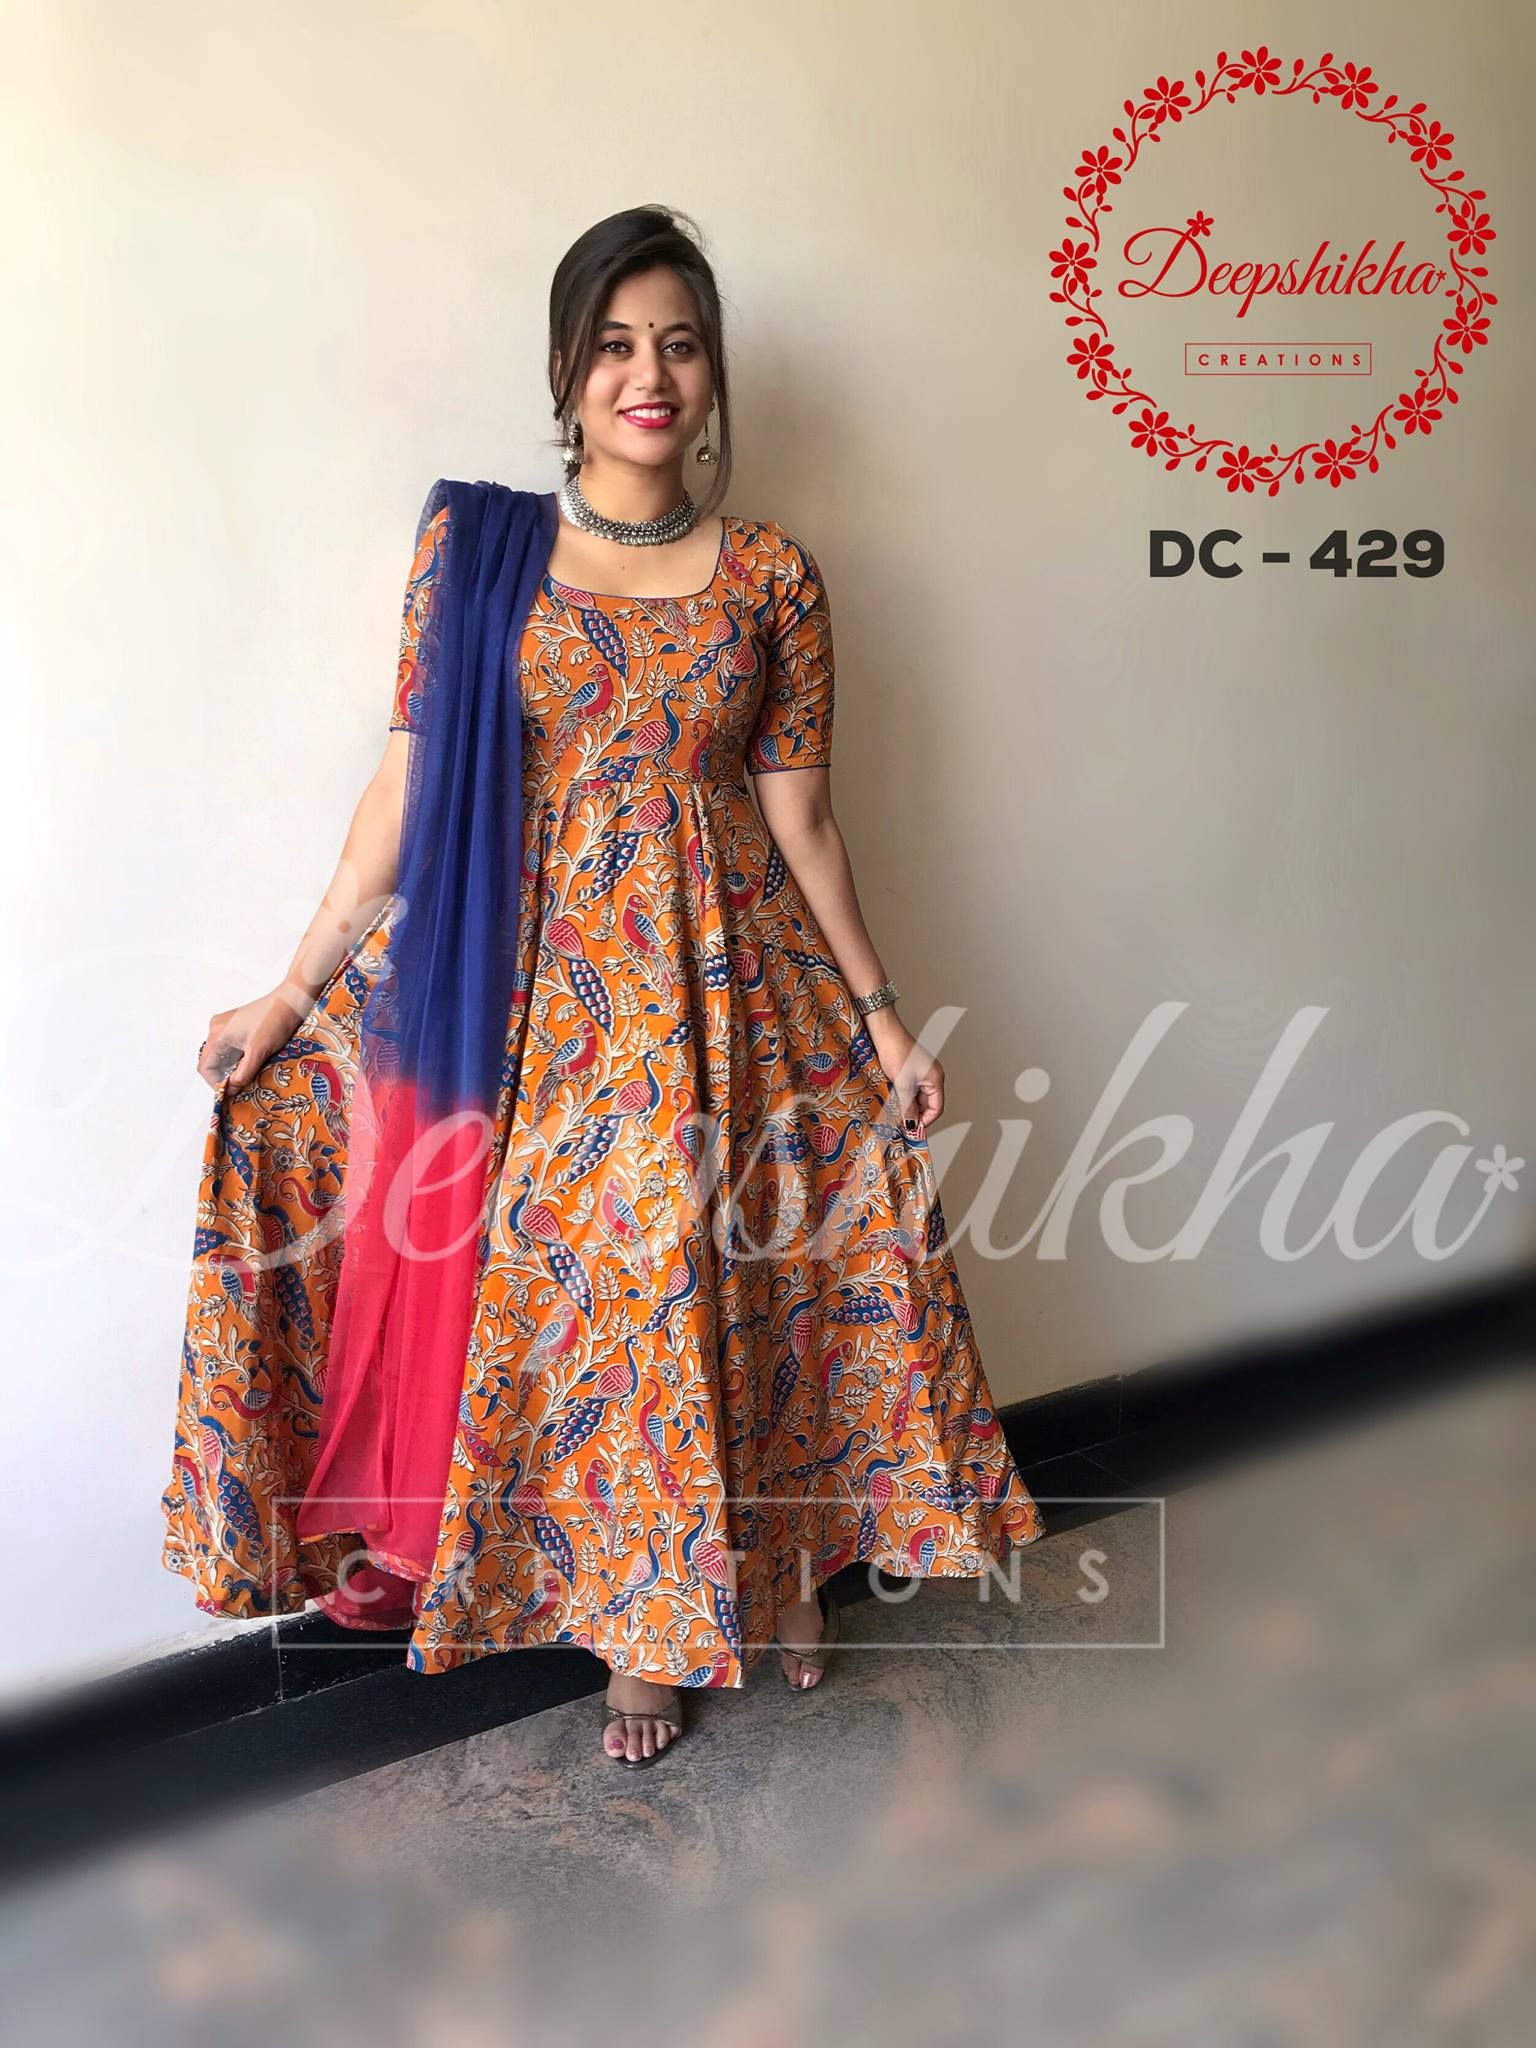 acbdb1d746 Beautiful floor length anarkali dress from Deepshikha Creations. For  queries kindly WhatsApp : +91 9059683293